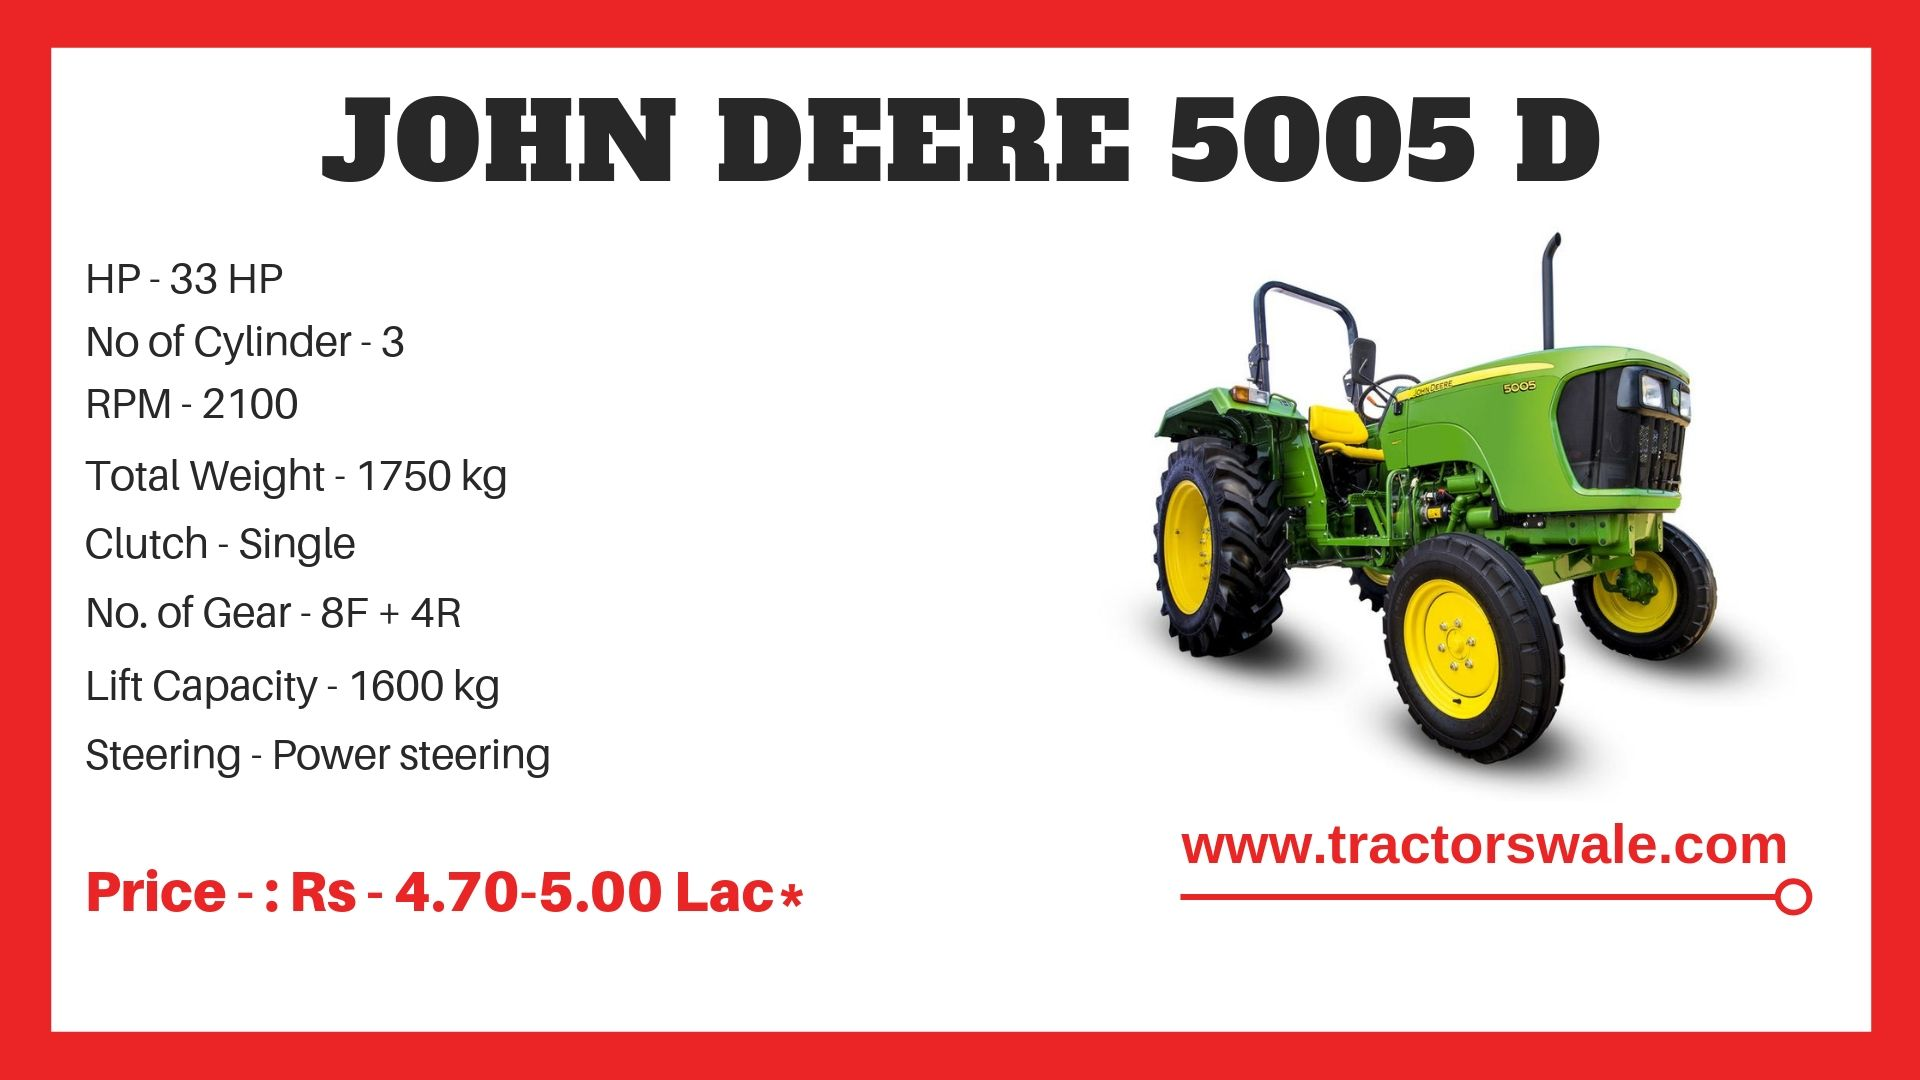 John Deere Tractor 5005 D Specifications